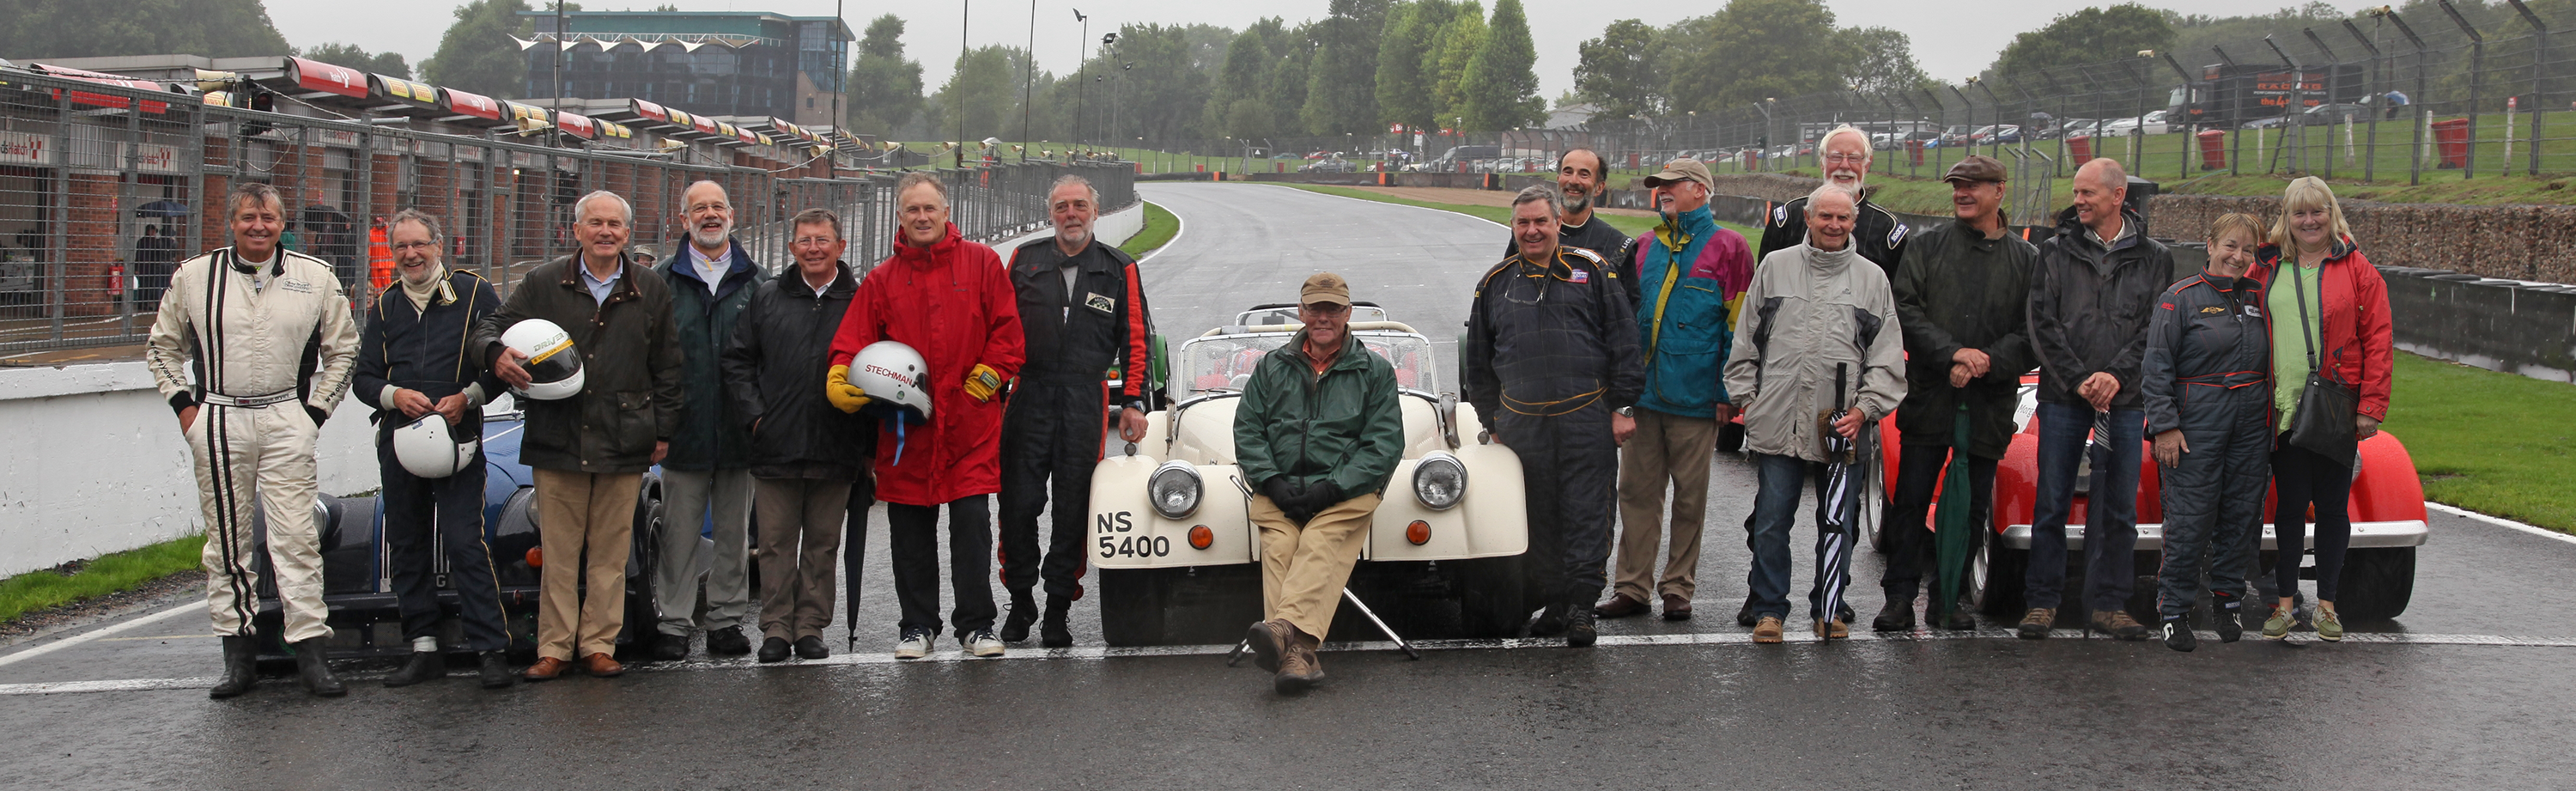 Drivers and organisers from the first year of the Morgan Challenge at a reunion in 2015 Morgan Challenge